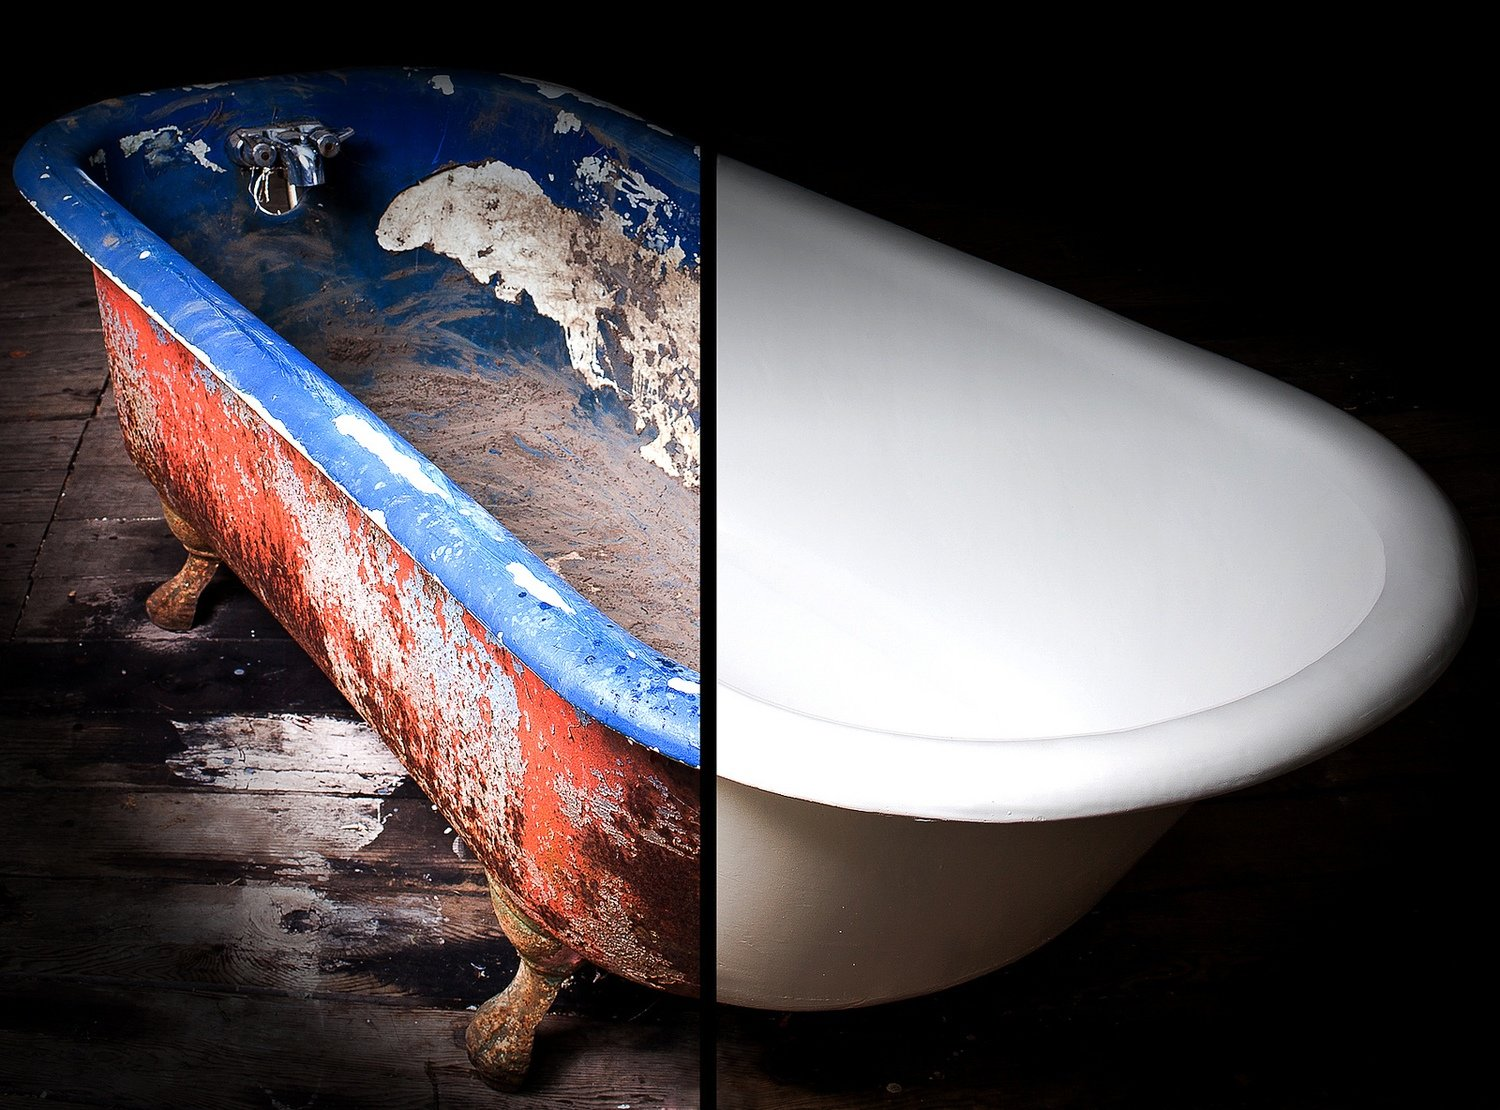 CLASSIC CLAWFOOT TUB REFINISHING